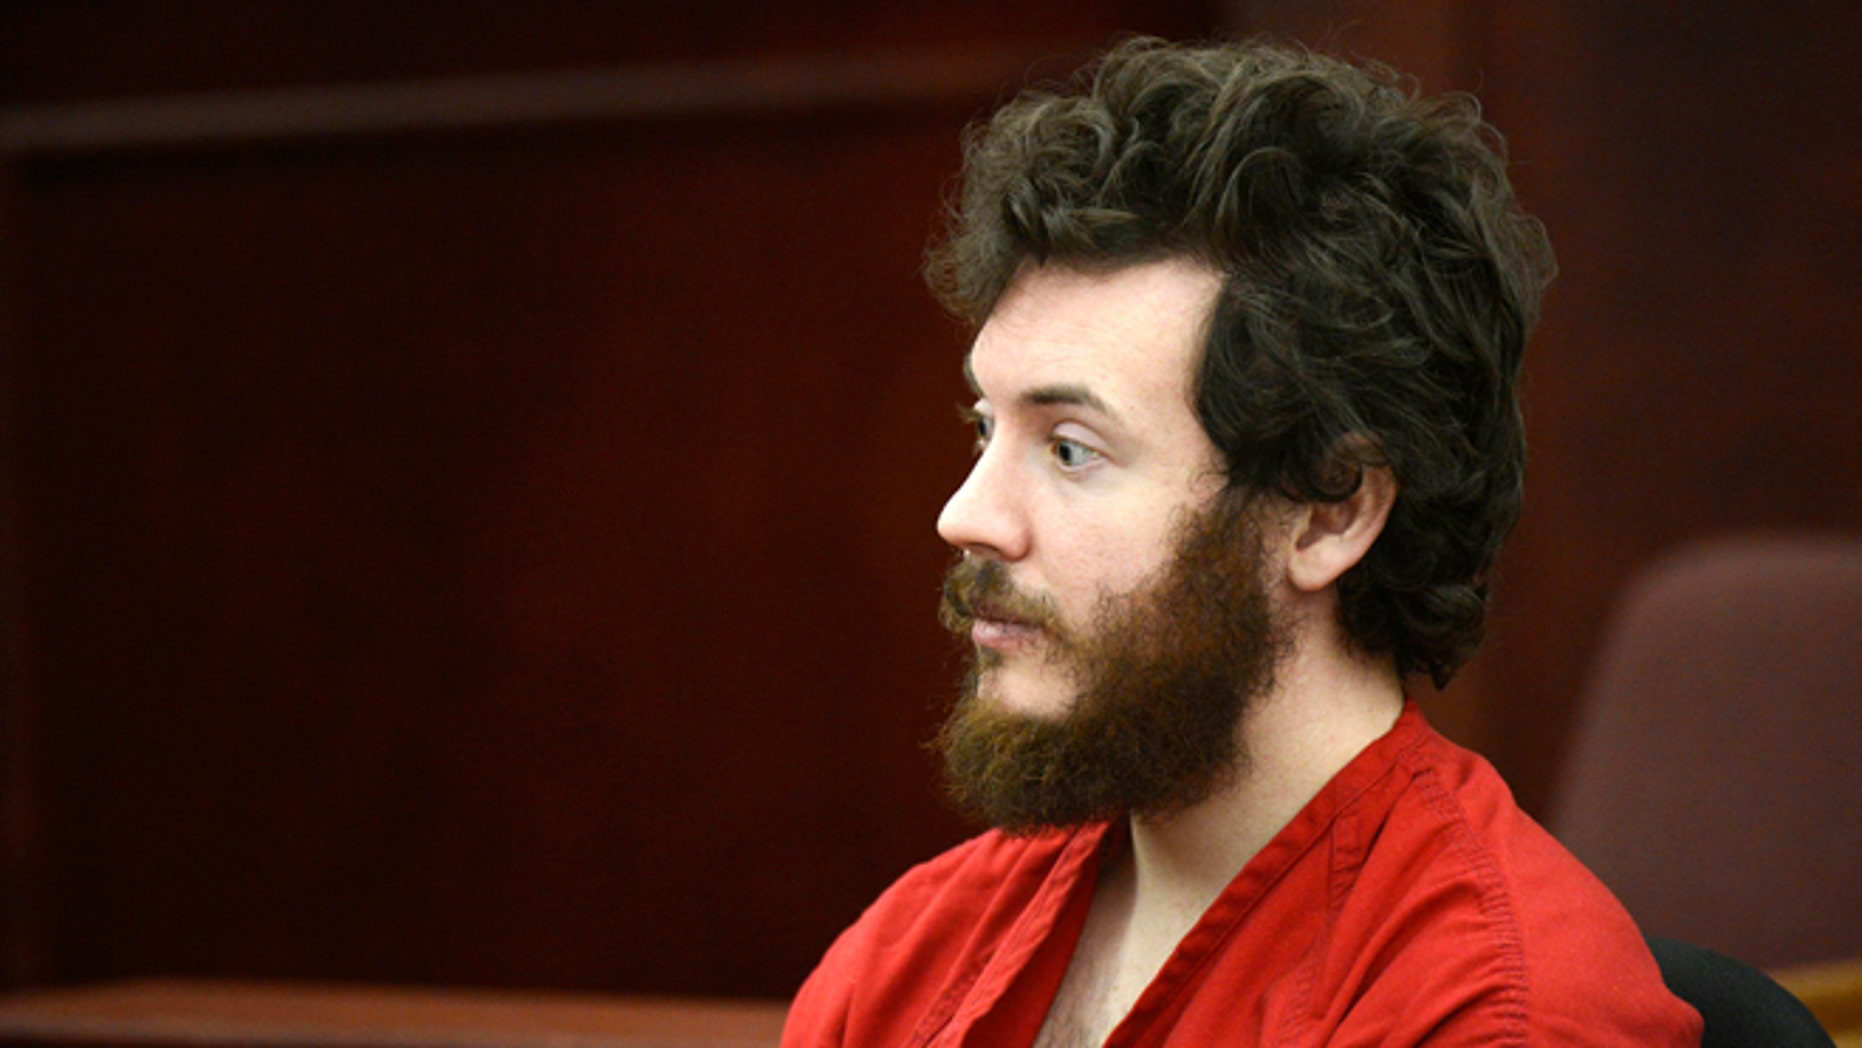 March 12, 2013: This file photo shows James Holmes, Aurora theater shooting suspect, in the courtroom during his arraignment in Centennial, Colo.